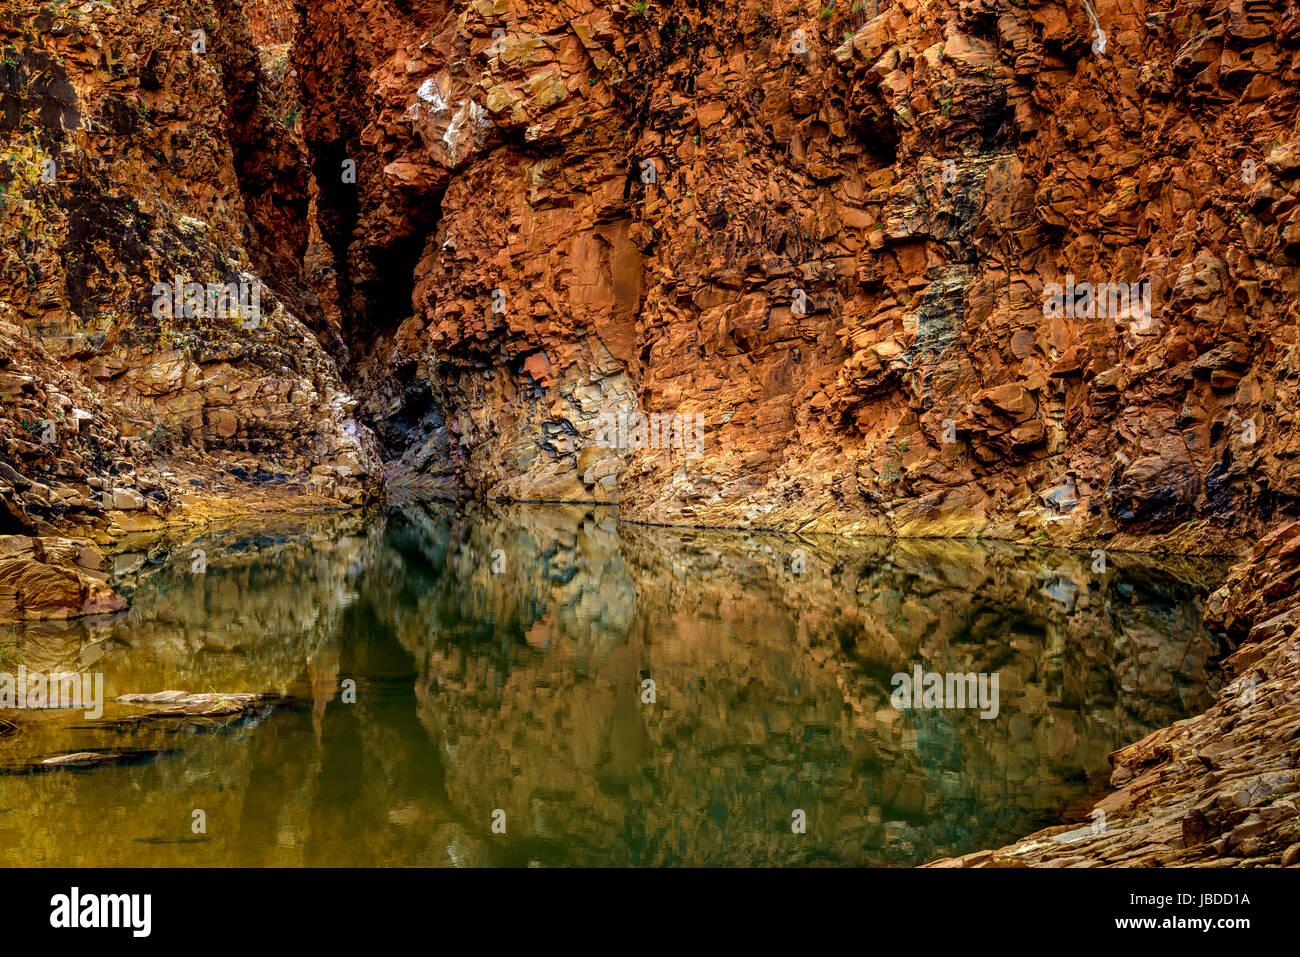 Redbank Gorge at West Macdonnell Ranges, Northern Territory Stock Photo